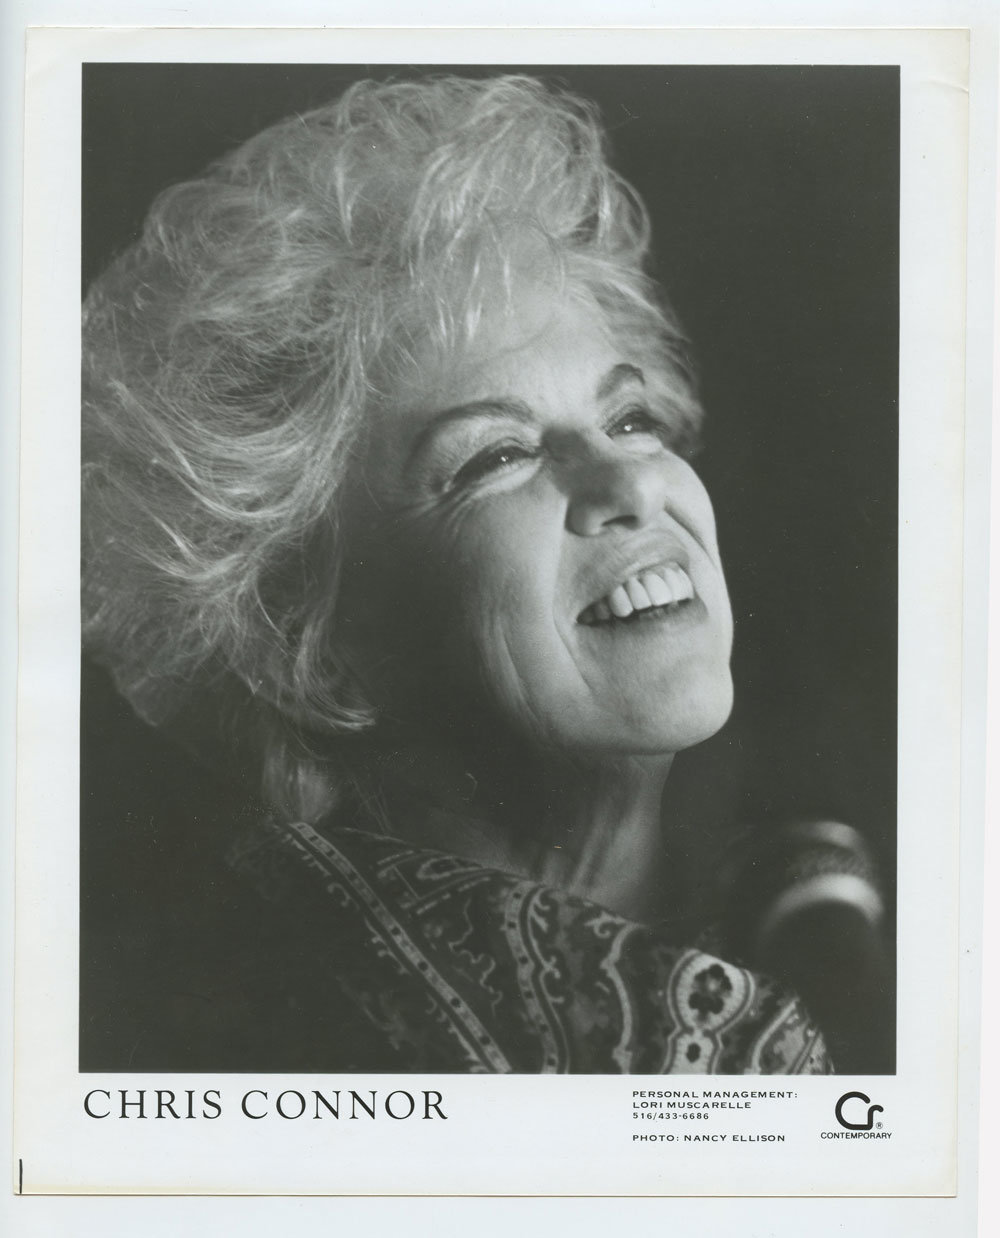 Chris Connor Photo 1987 Publicity Promo Contemporary Records